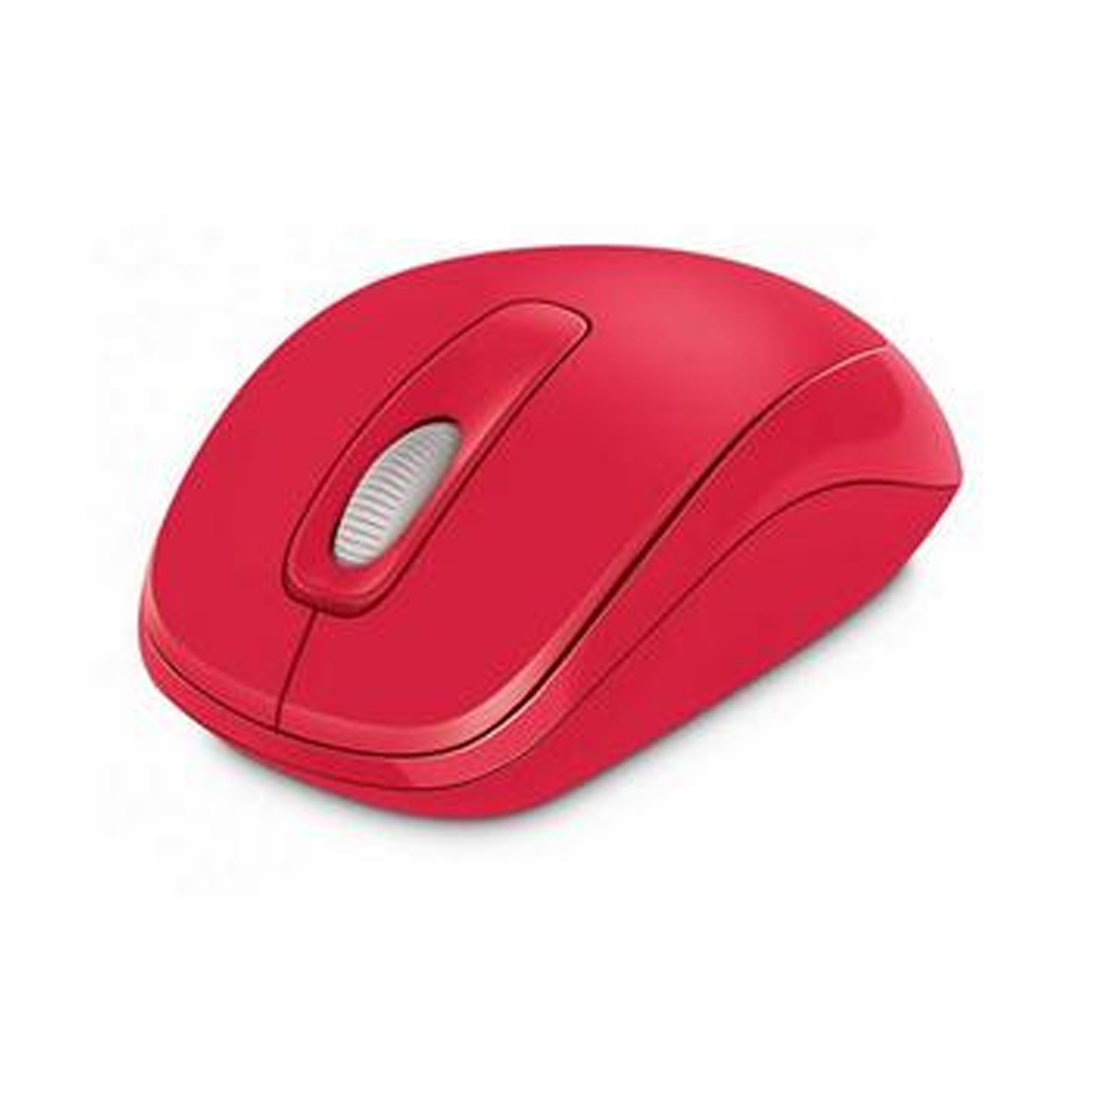 Microsoft-Wireless-Mobile-Mouse-1000-Red-2CF-00023